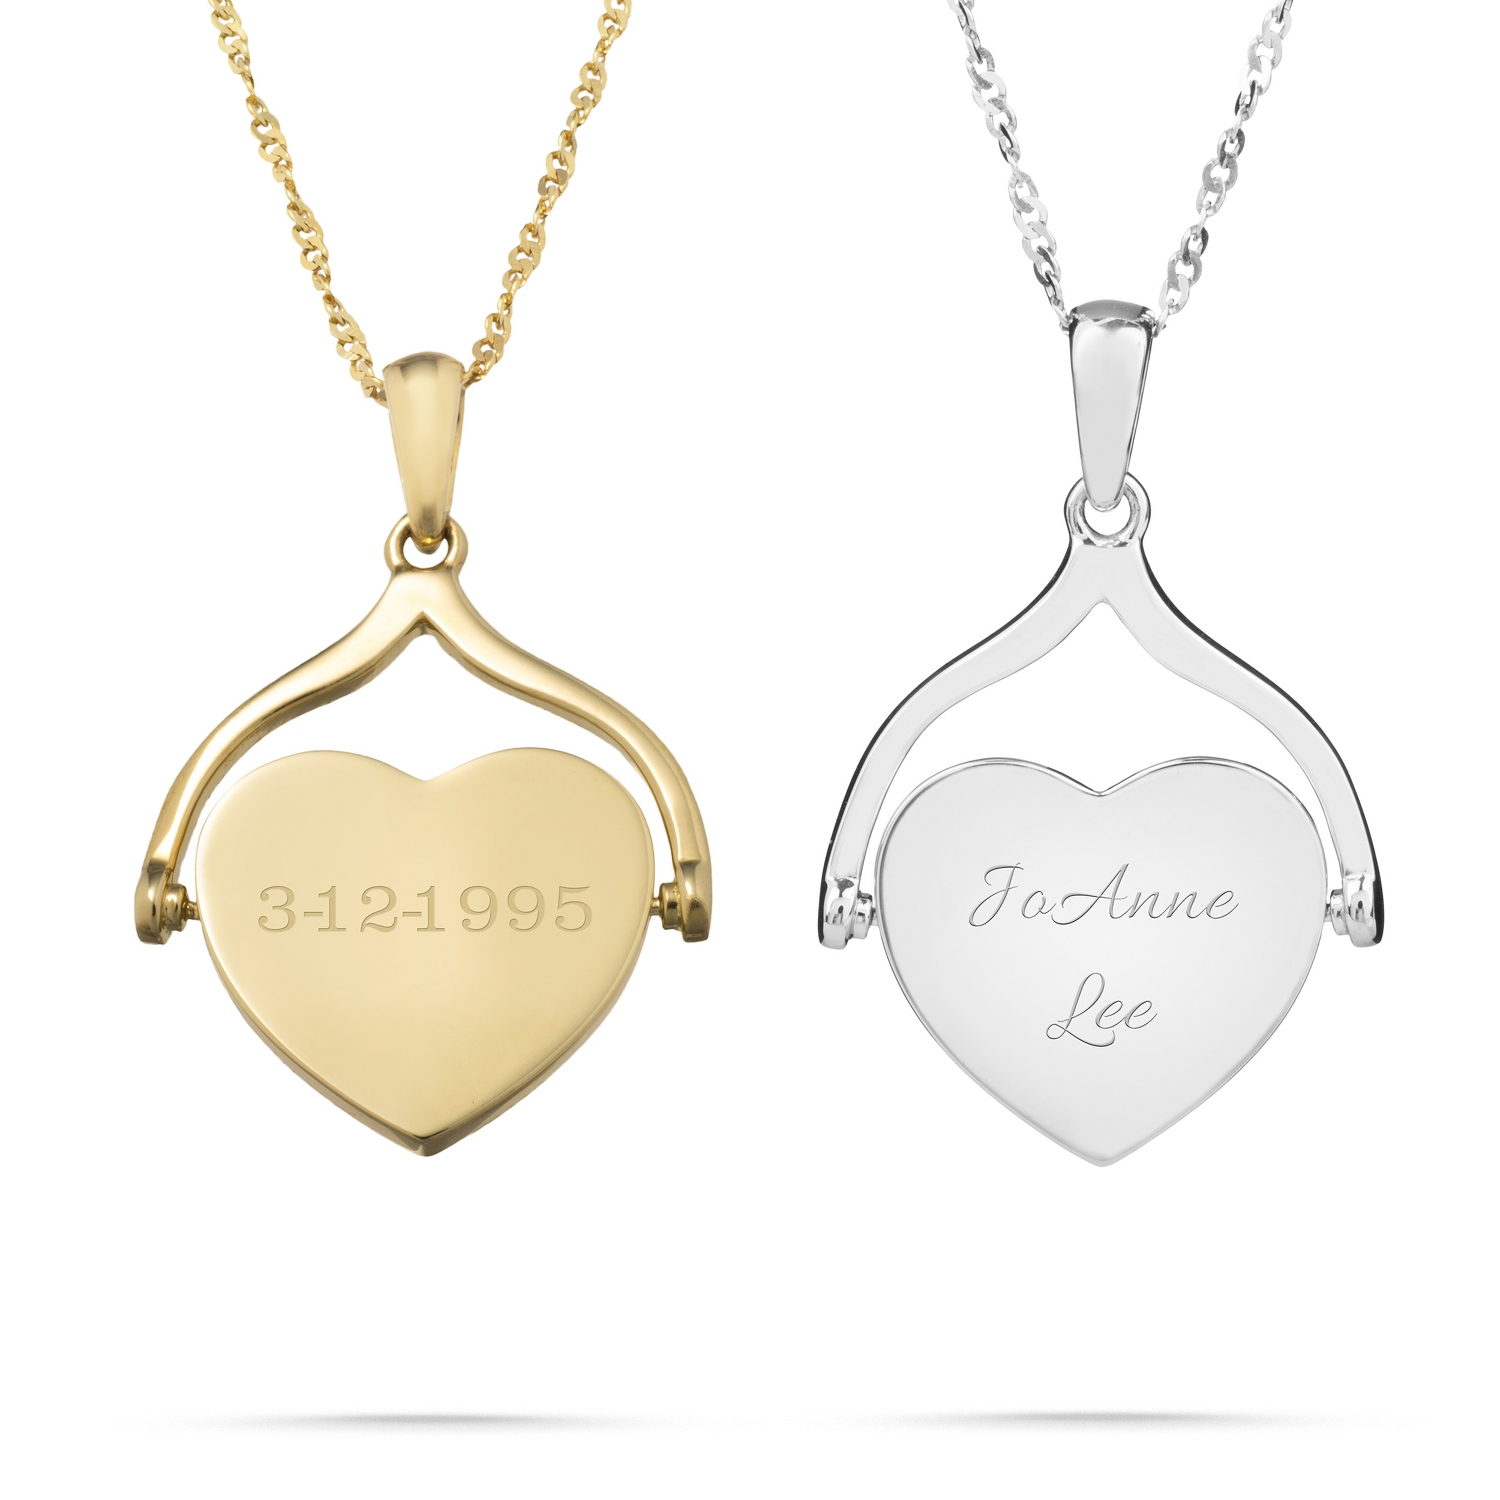 cursive products necklace grandma lockets mae oaklee side heart